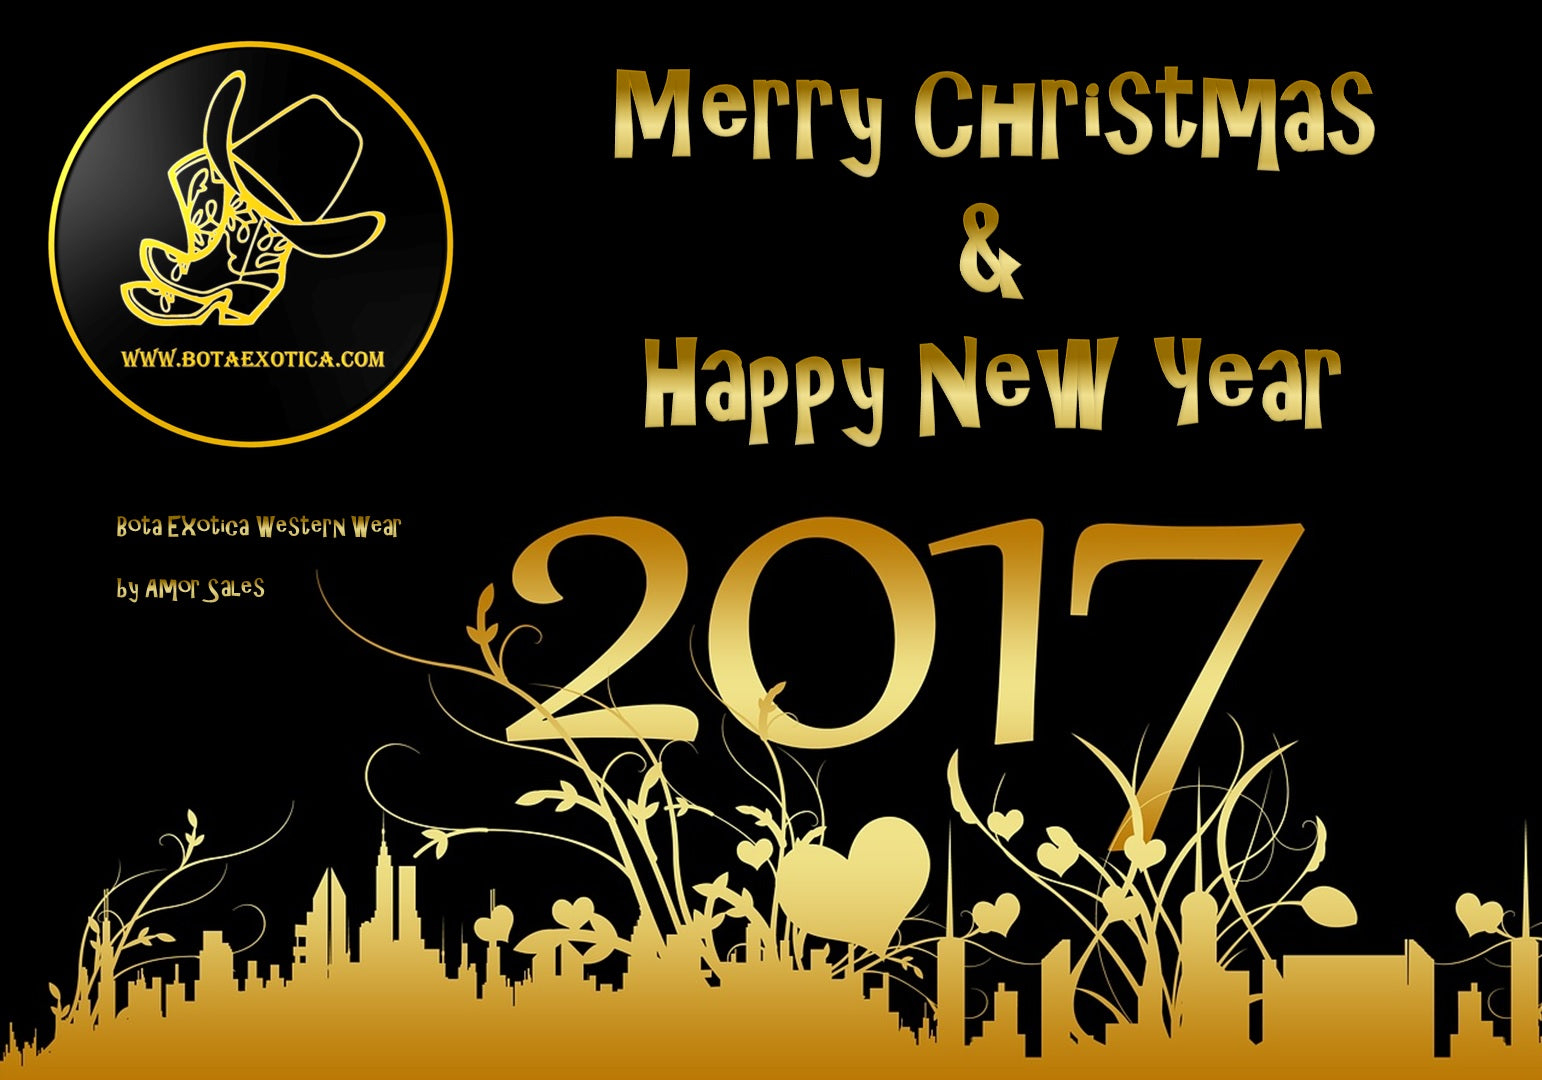 Marry christmas and Happy New Year 2017 - Bota Exotica